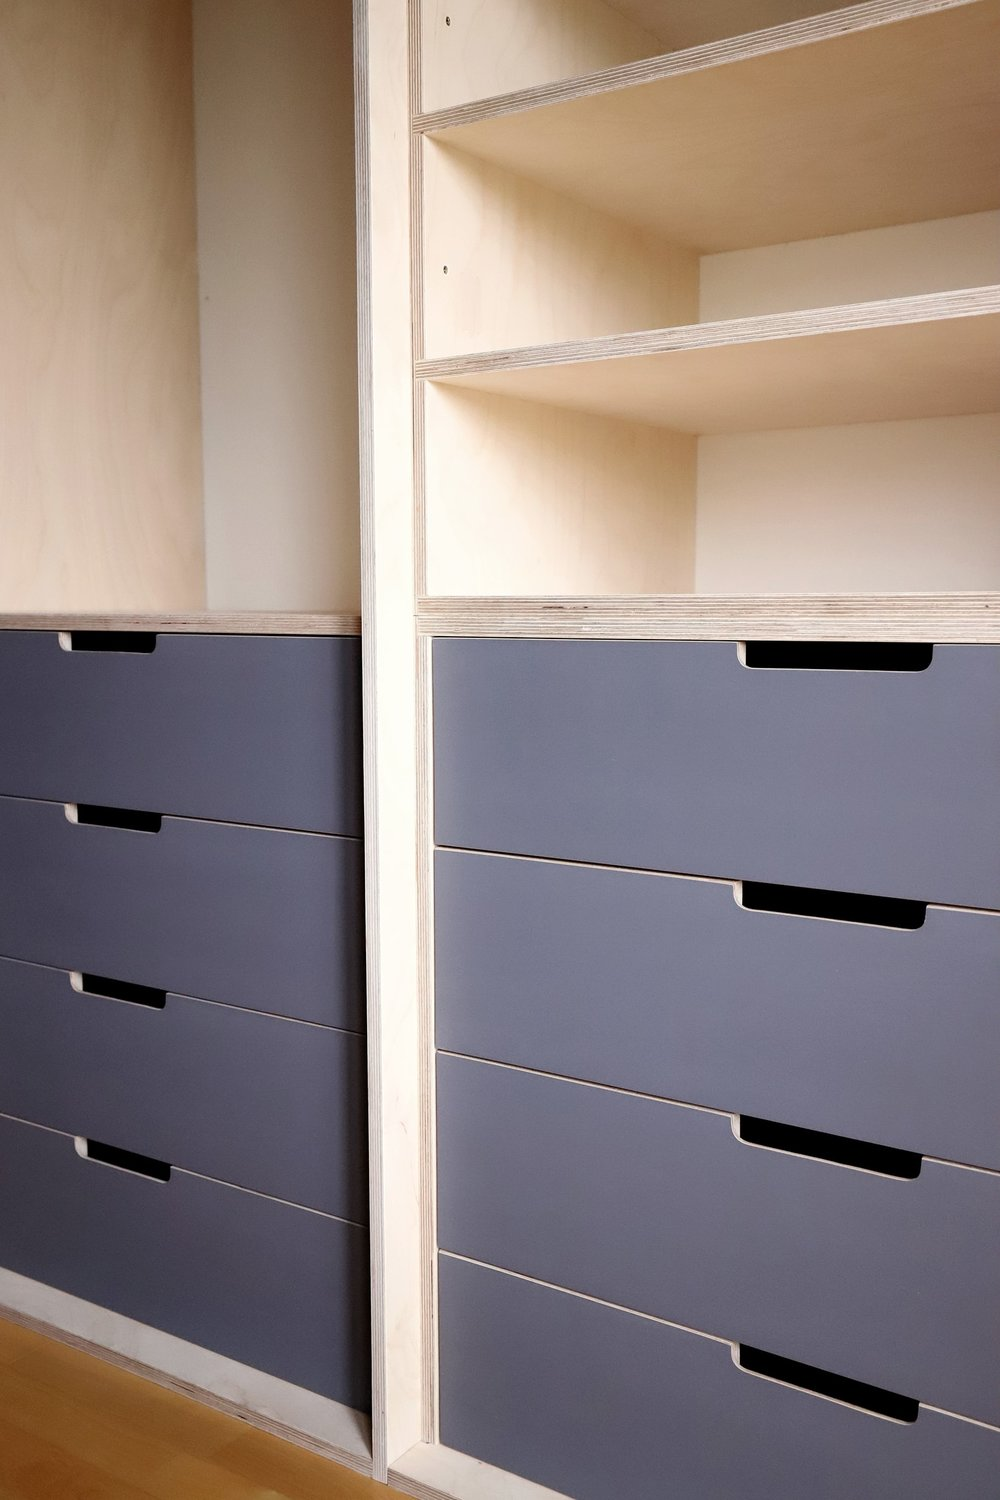 Ample drawer space allows the couple to easily store all their clothing.